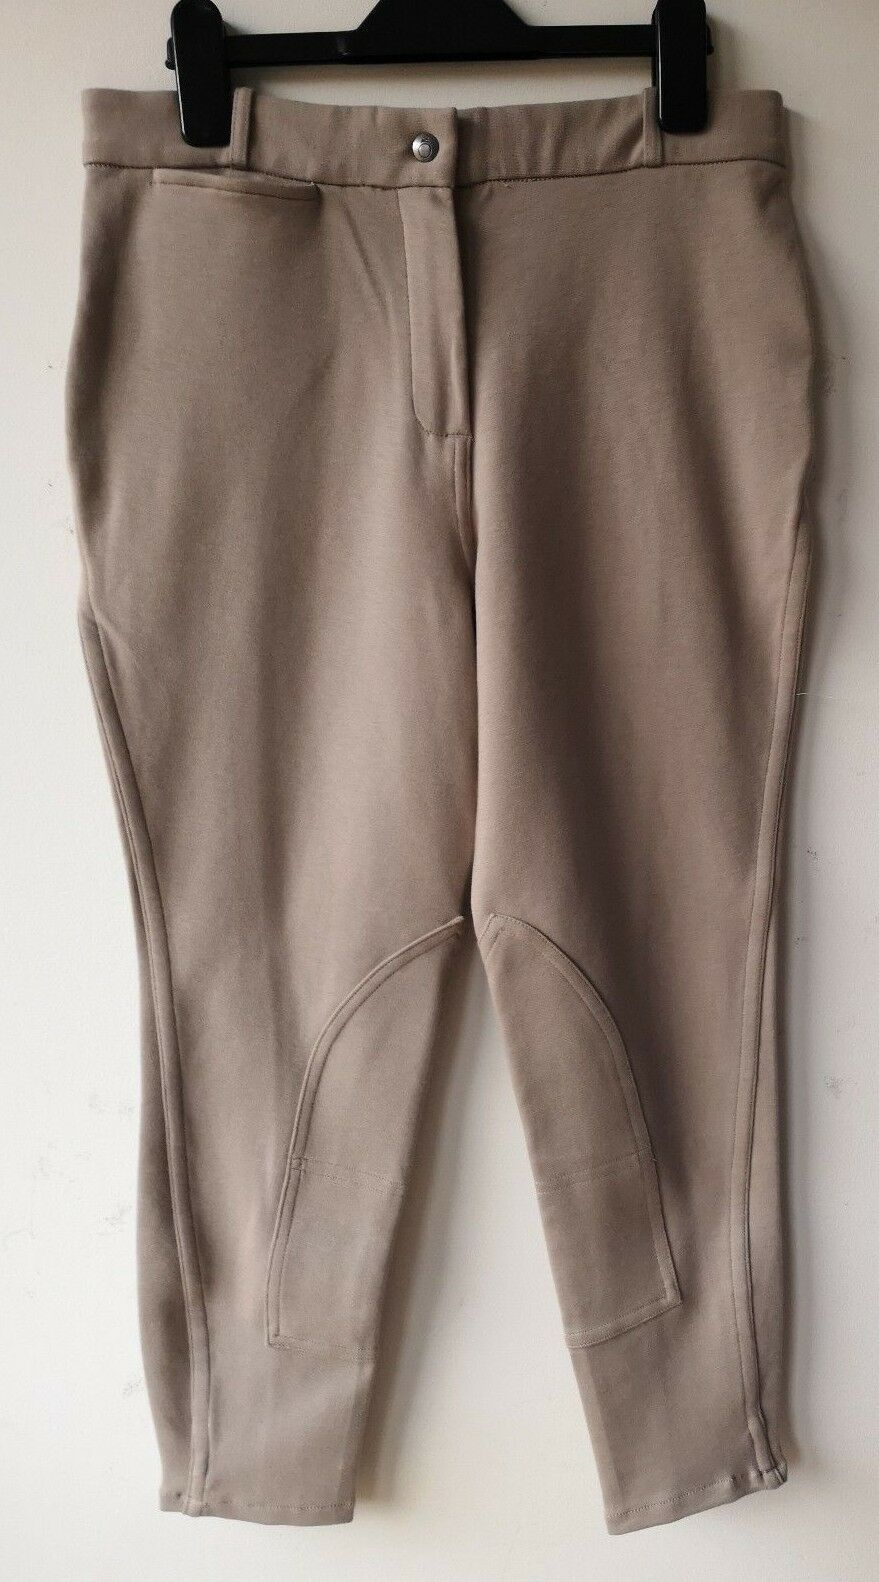 OXYLANE fOuganza Jodhpurs Trousers  W29+ Stretch L24in taupe  shop online today